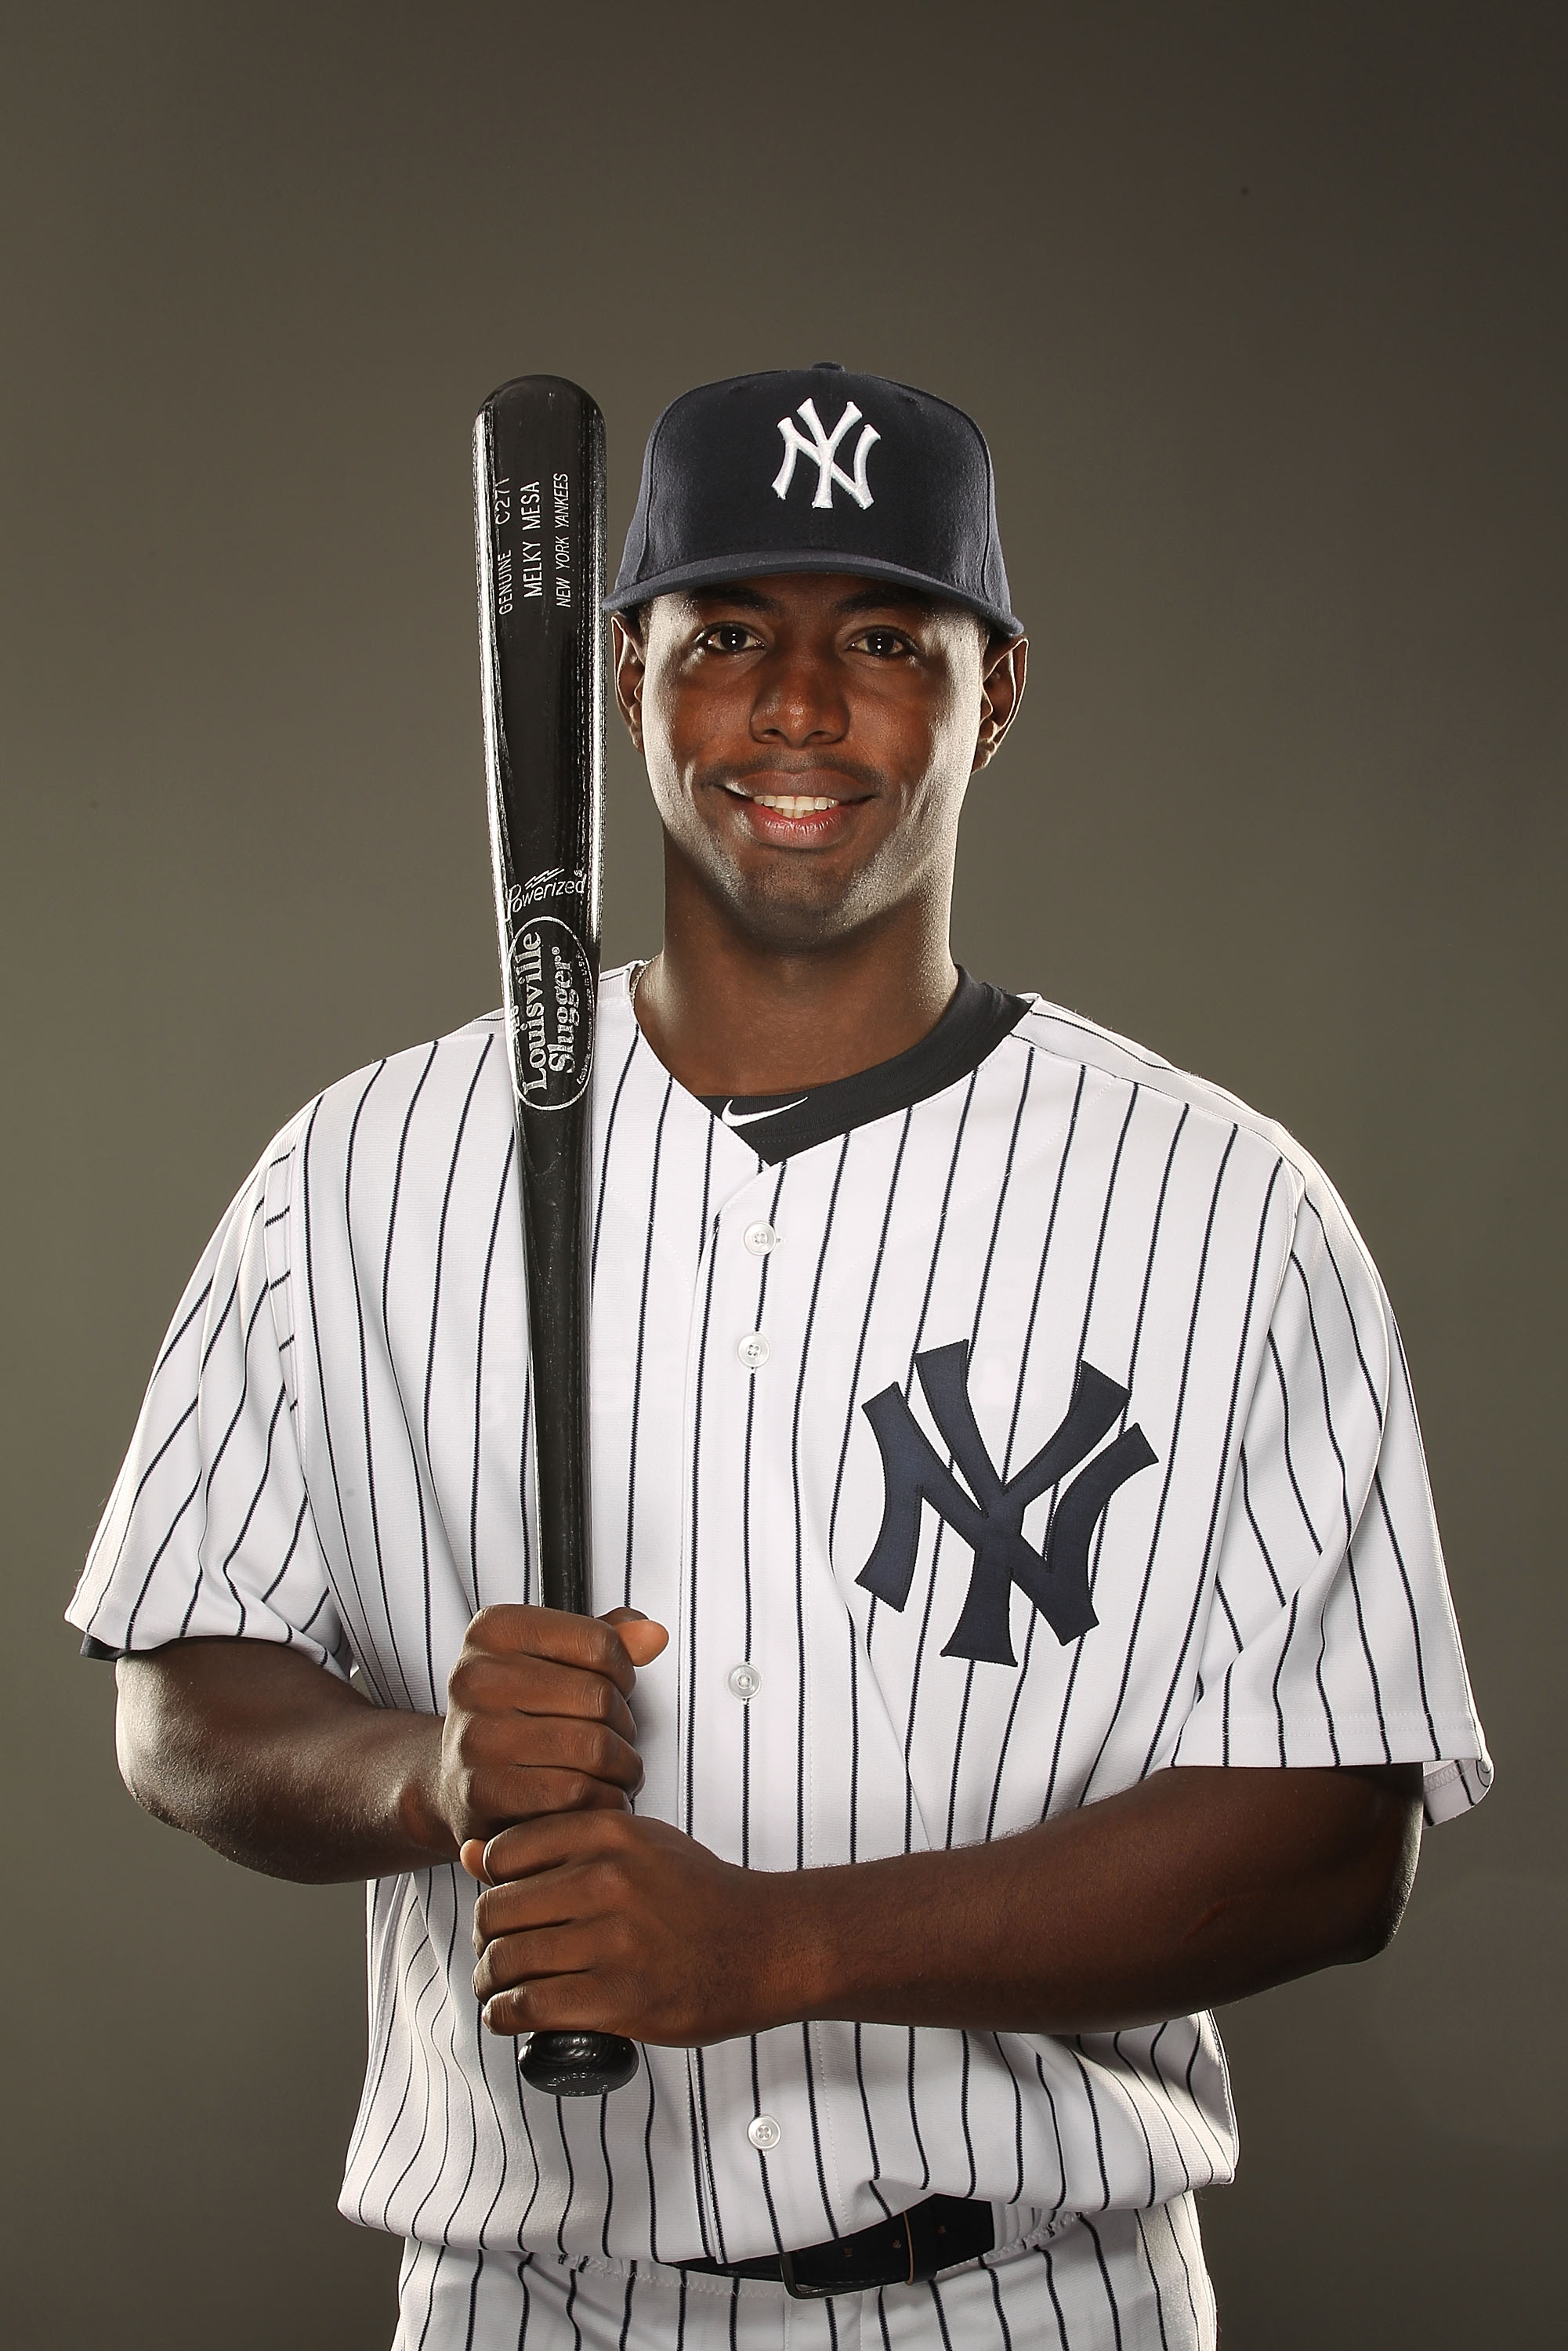 TAMPA, FL - FEBRUARY 23:  Melky Mesa #77 of the New York Yankees poses for a portrait on Photo Day at George M. Steinbrenner Field on February 23, 2011 in Tampa, Florida.  (Photo by Al Bello/Getty Images)